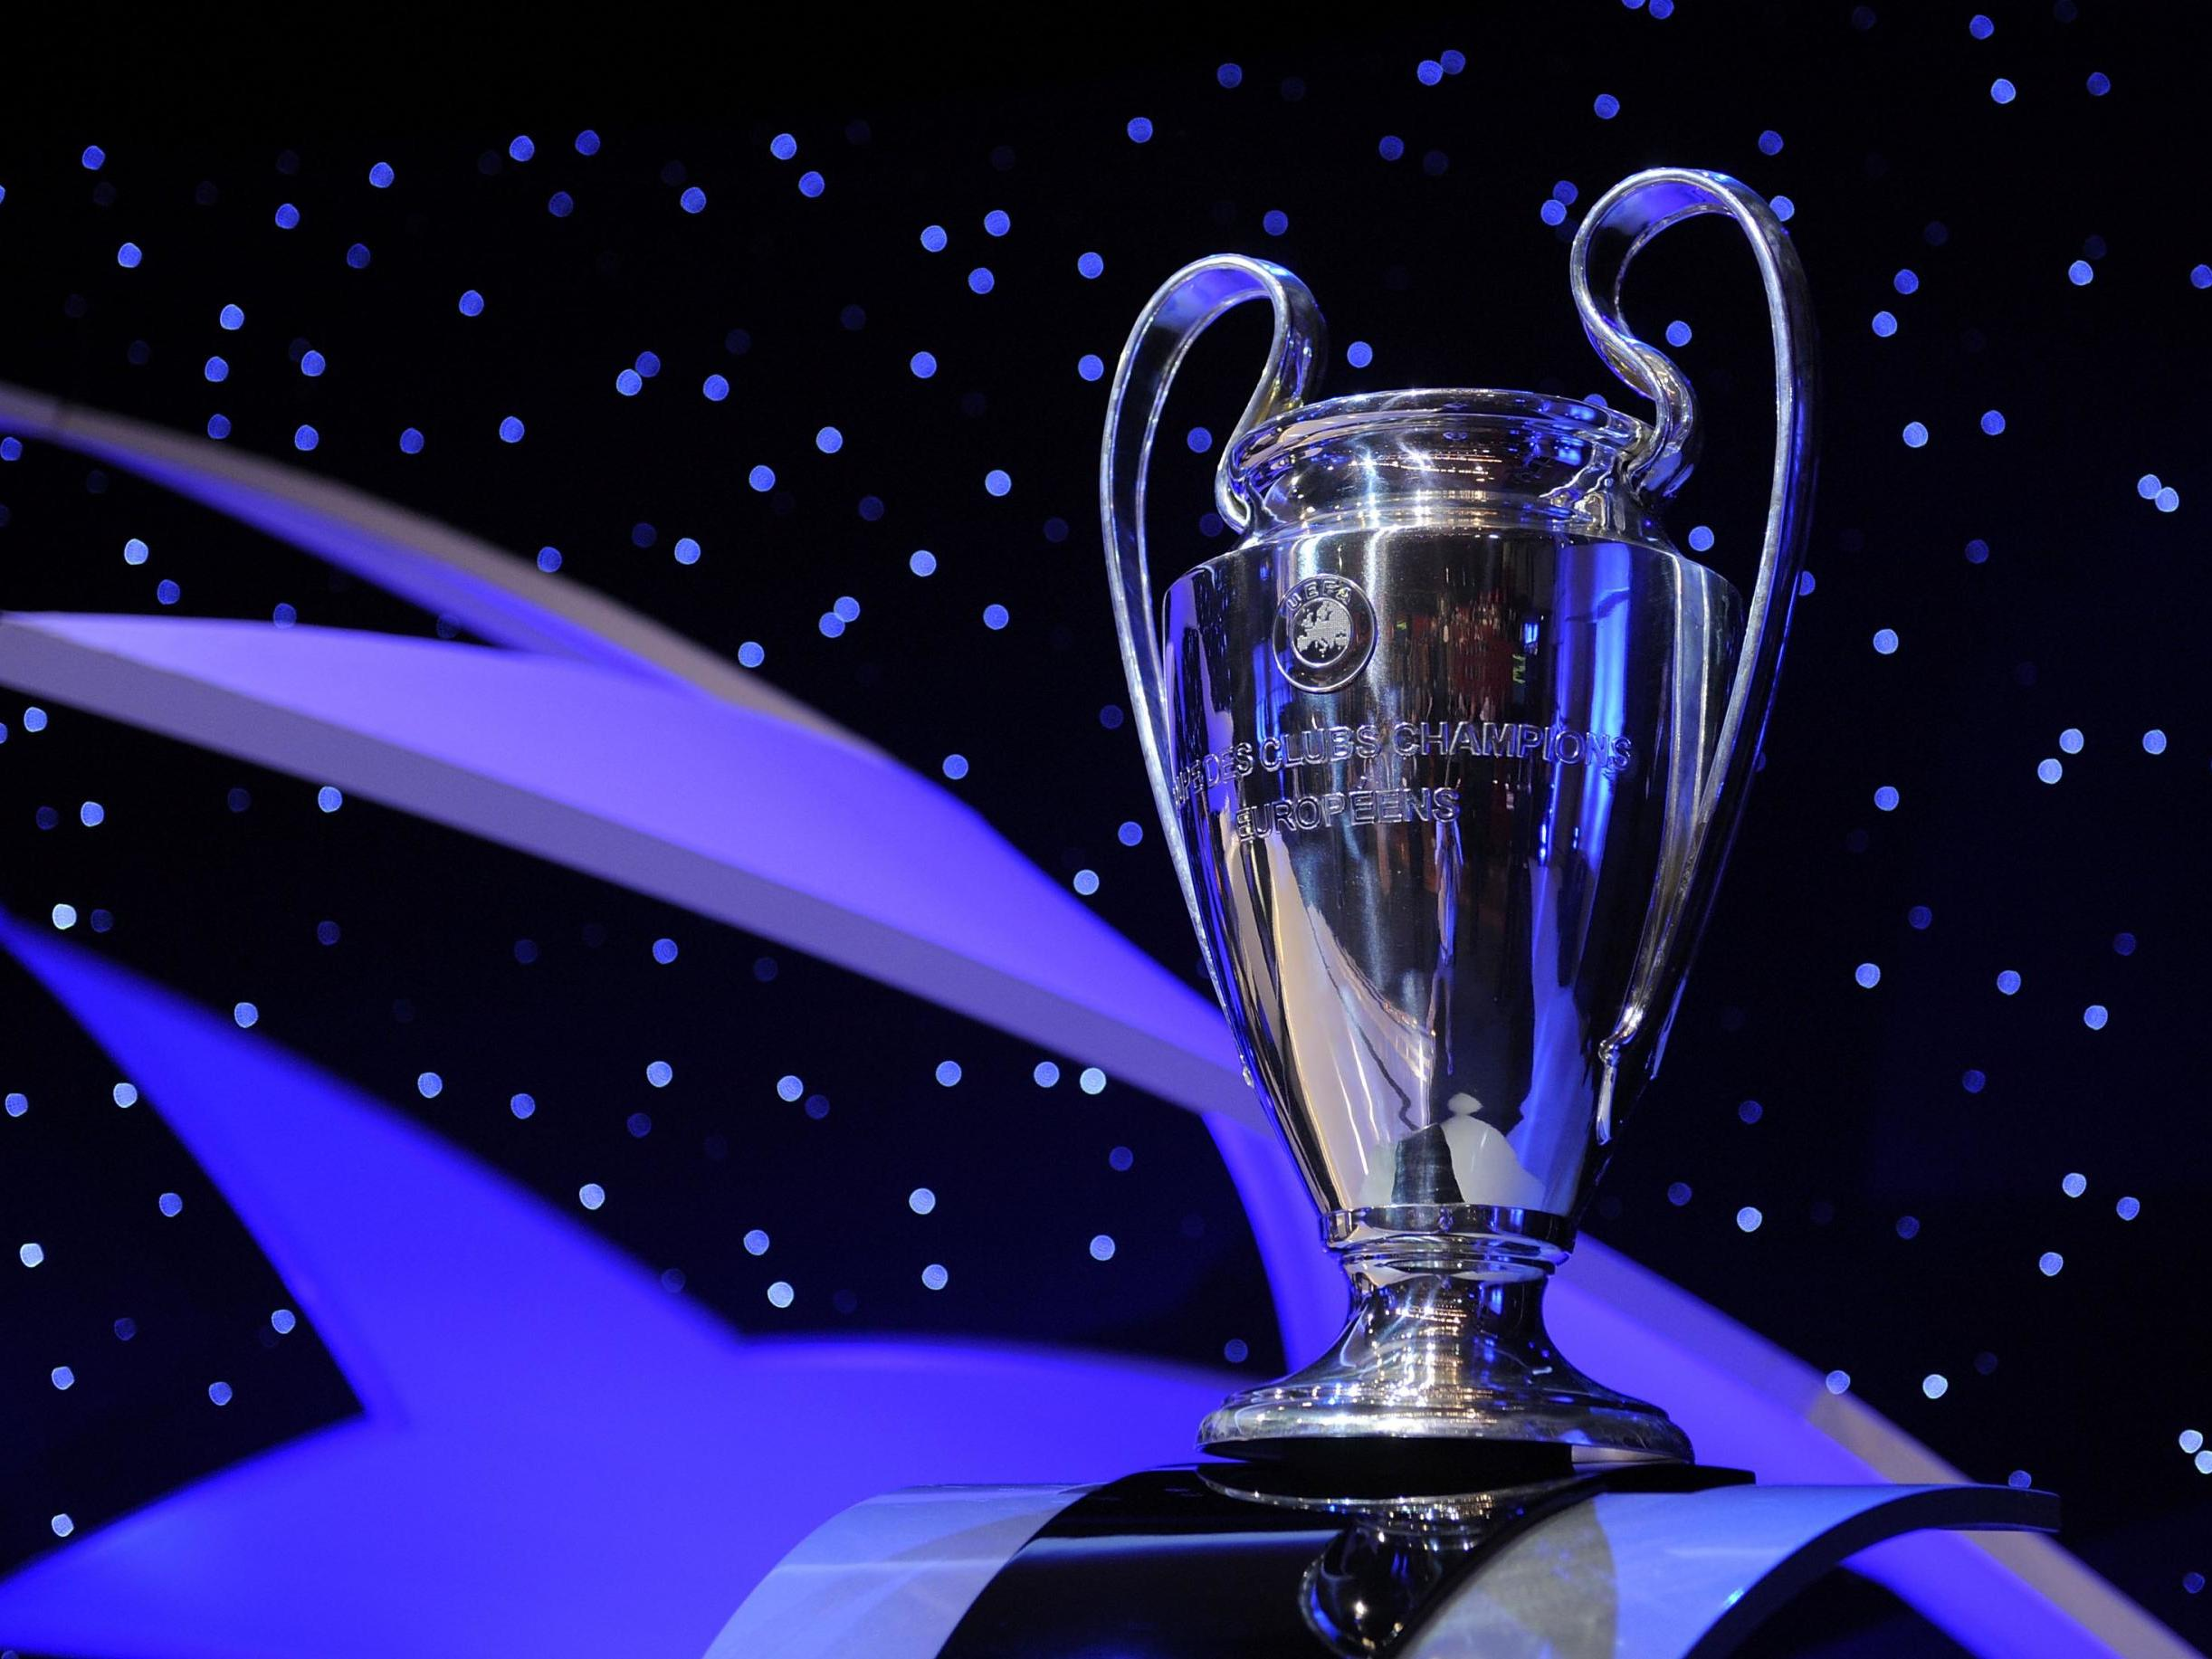 Champions League draw 2019: When is group stage draw, live stream and TV information, seedings and odds